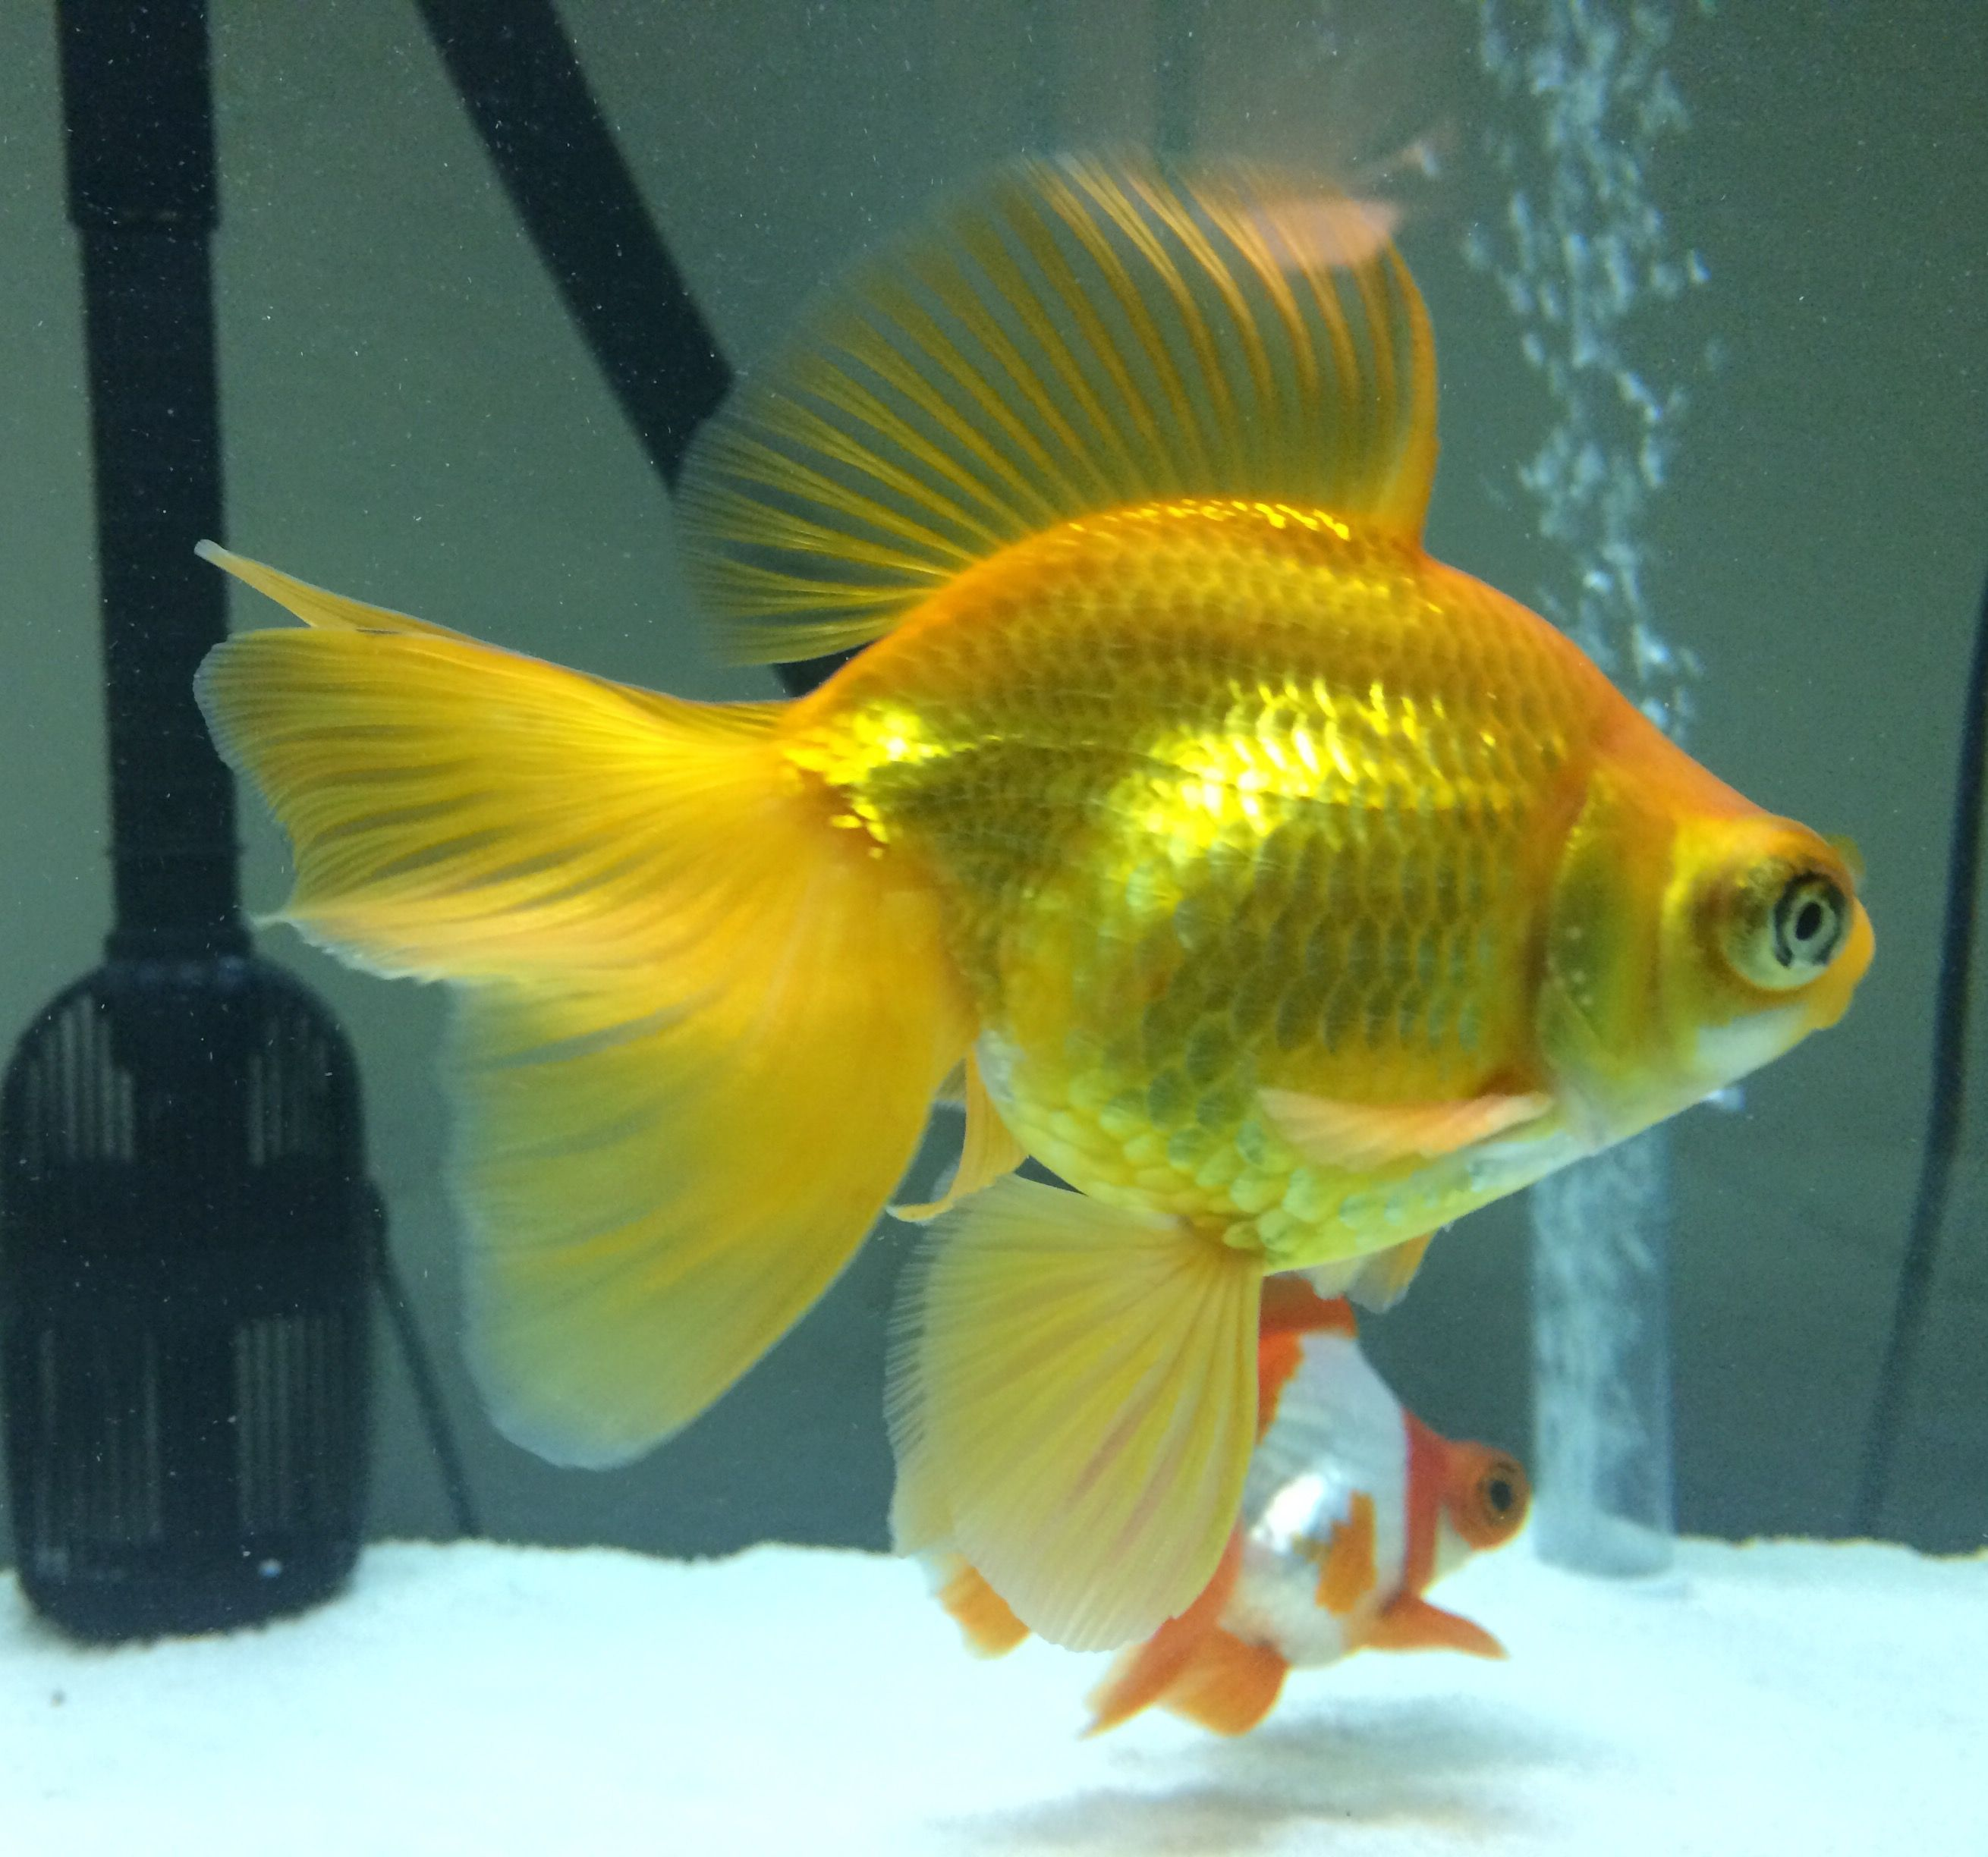 Imperial Yellow Butterfly Telescope Goldfish Aquarium Goldfish Goldfish Pond